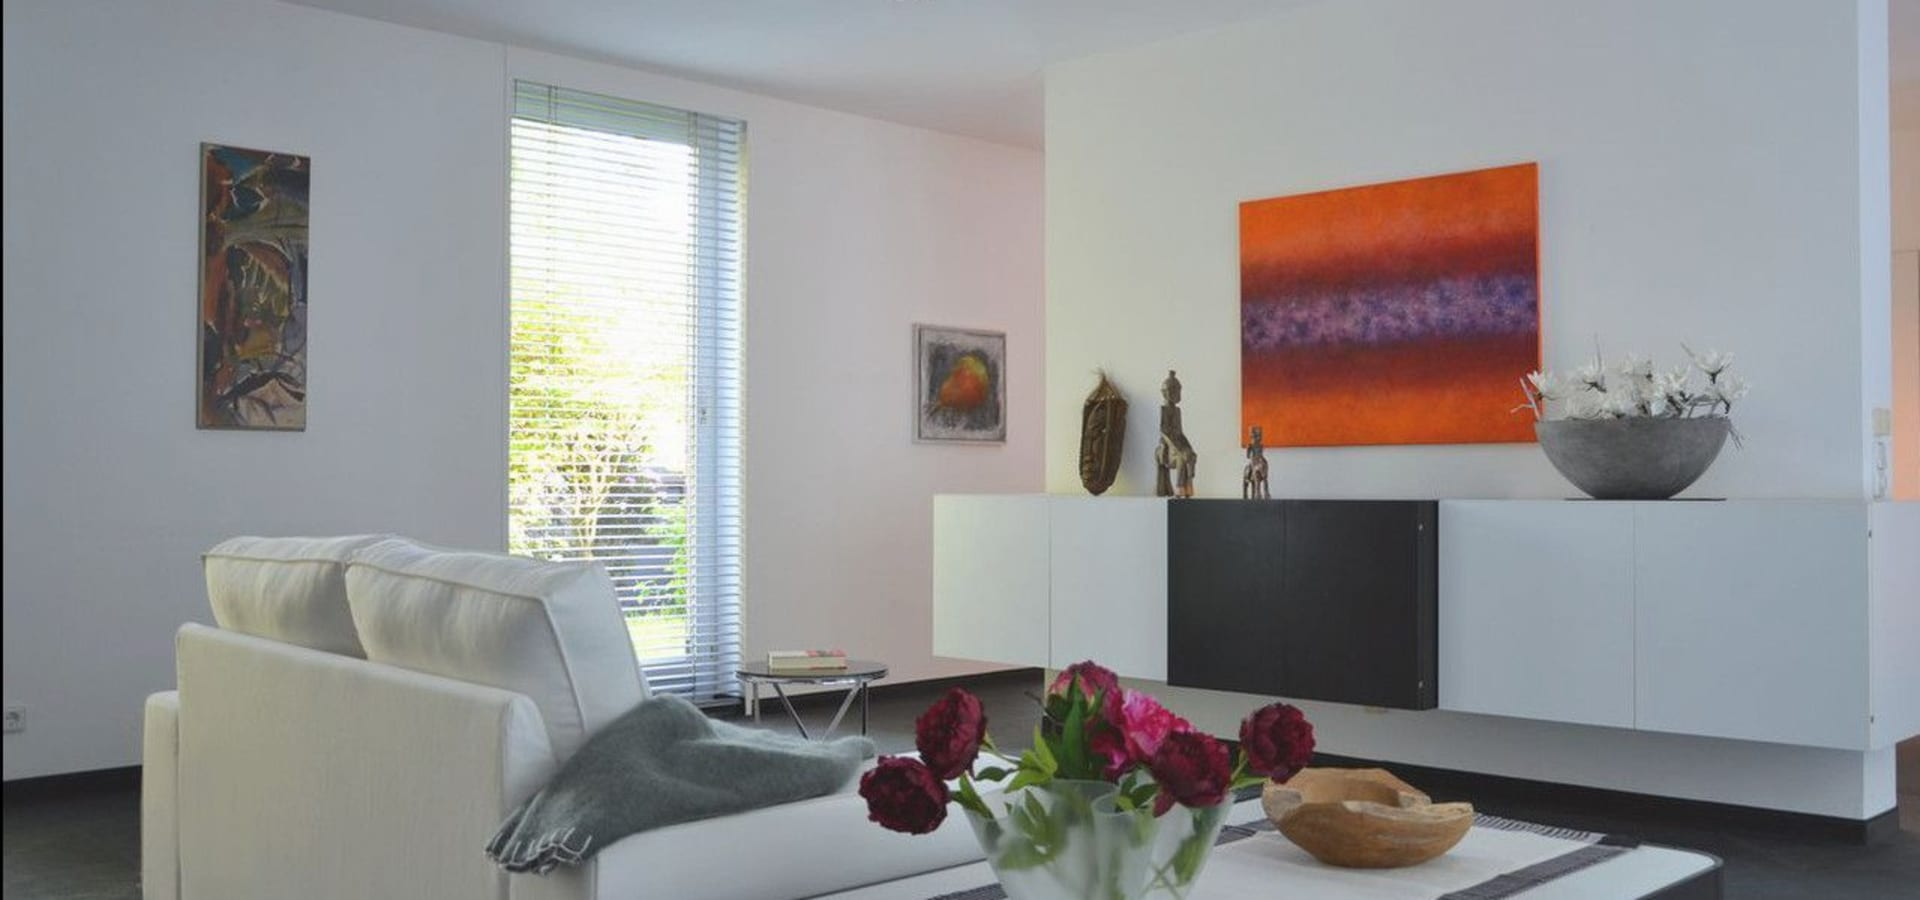 Home Staging Ulrike Philipp